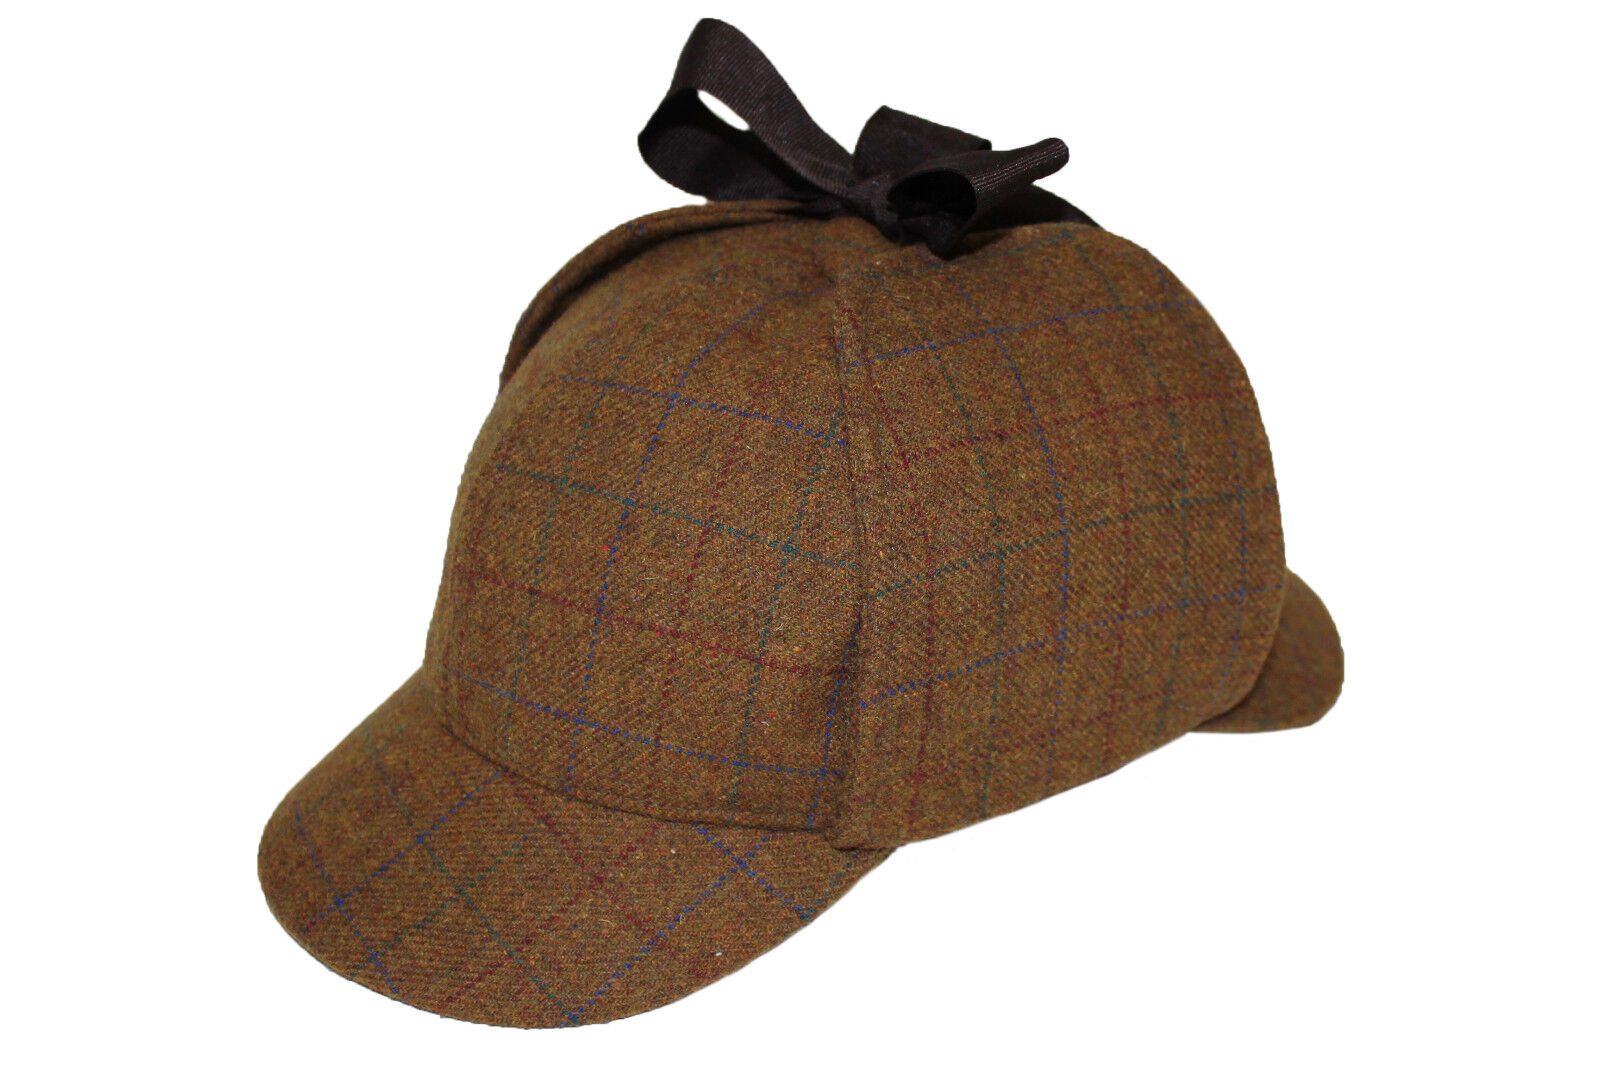 This is a really great deerstalker sherlock holmes style hat. The outer  fabric is 100% Wool design fabric. The hat has a brim that is the same at  the front ... b290d5bce08